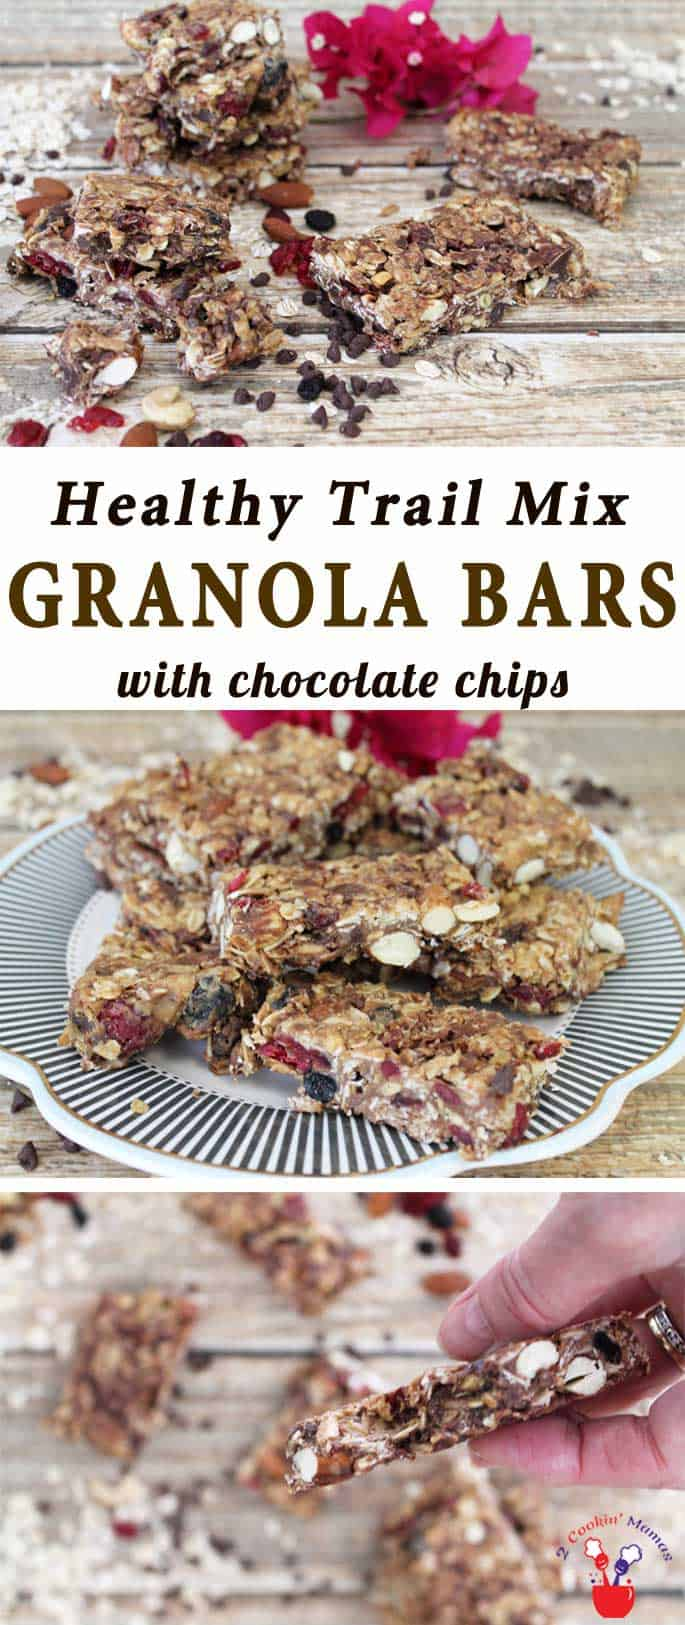 Trail Mix Granola Bars are a delicious, homemade & healthy snack. Sweetened with honey, flavored with peanut butter & packed with nuts, seeds & dried fruit. #recipe